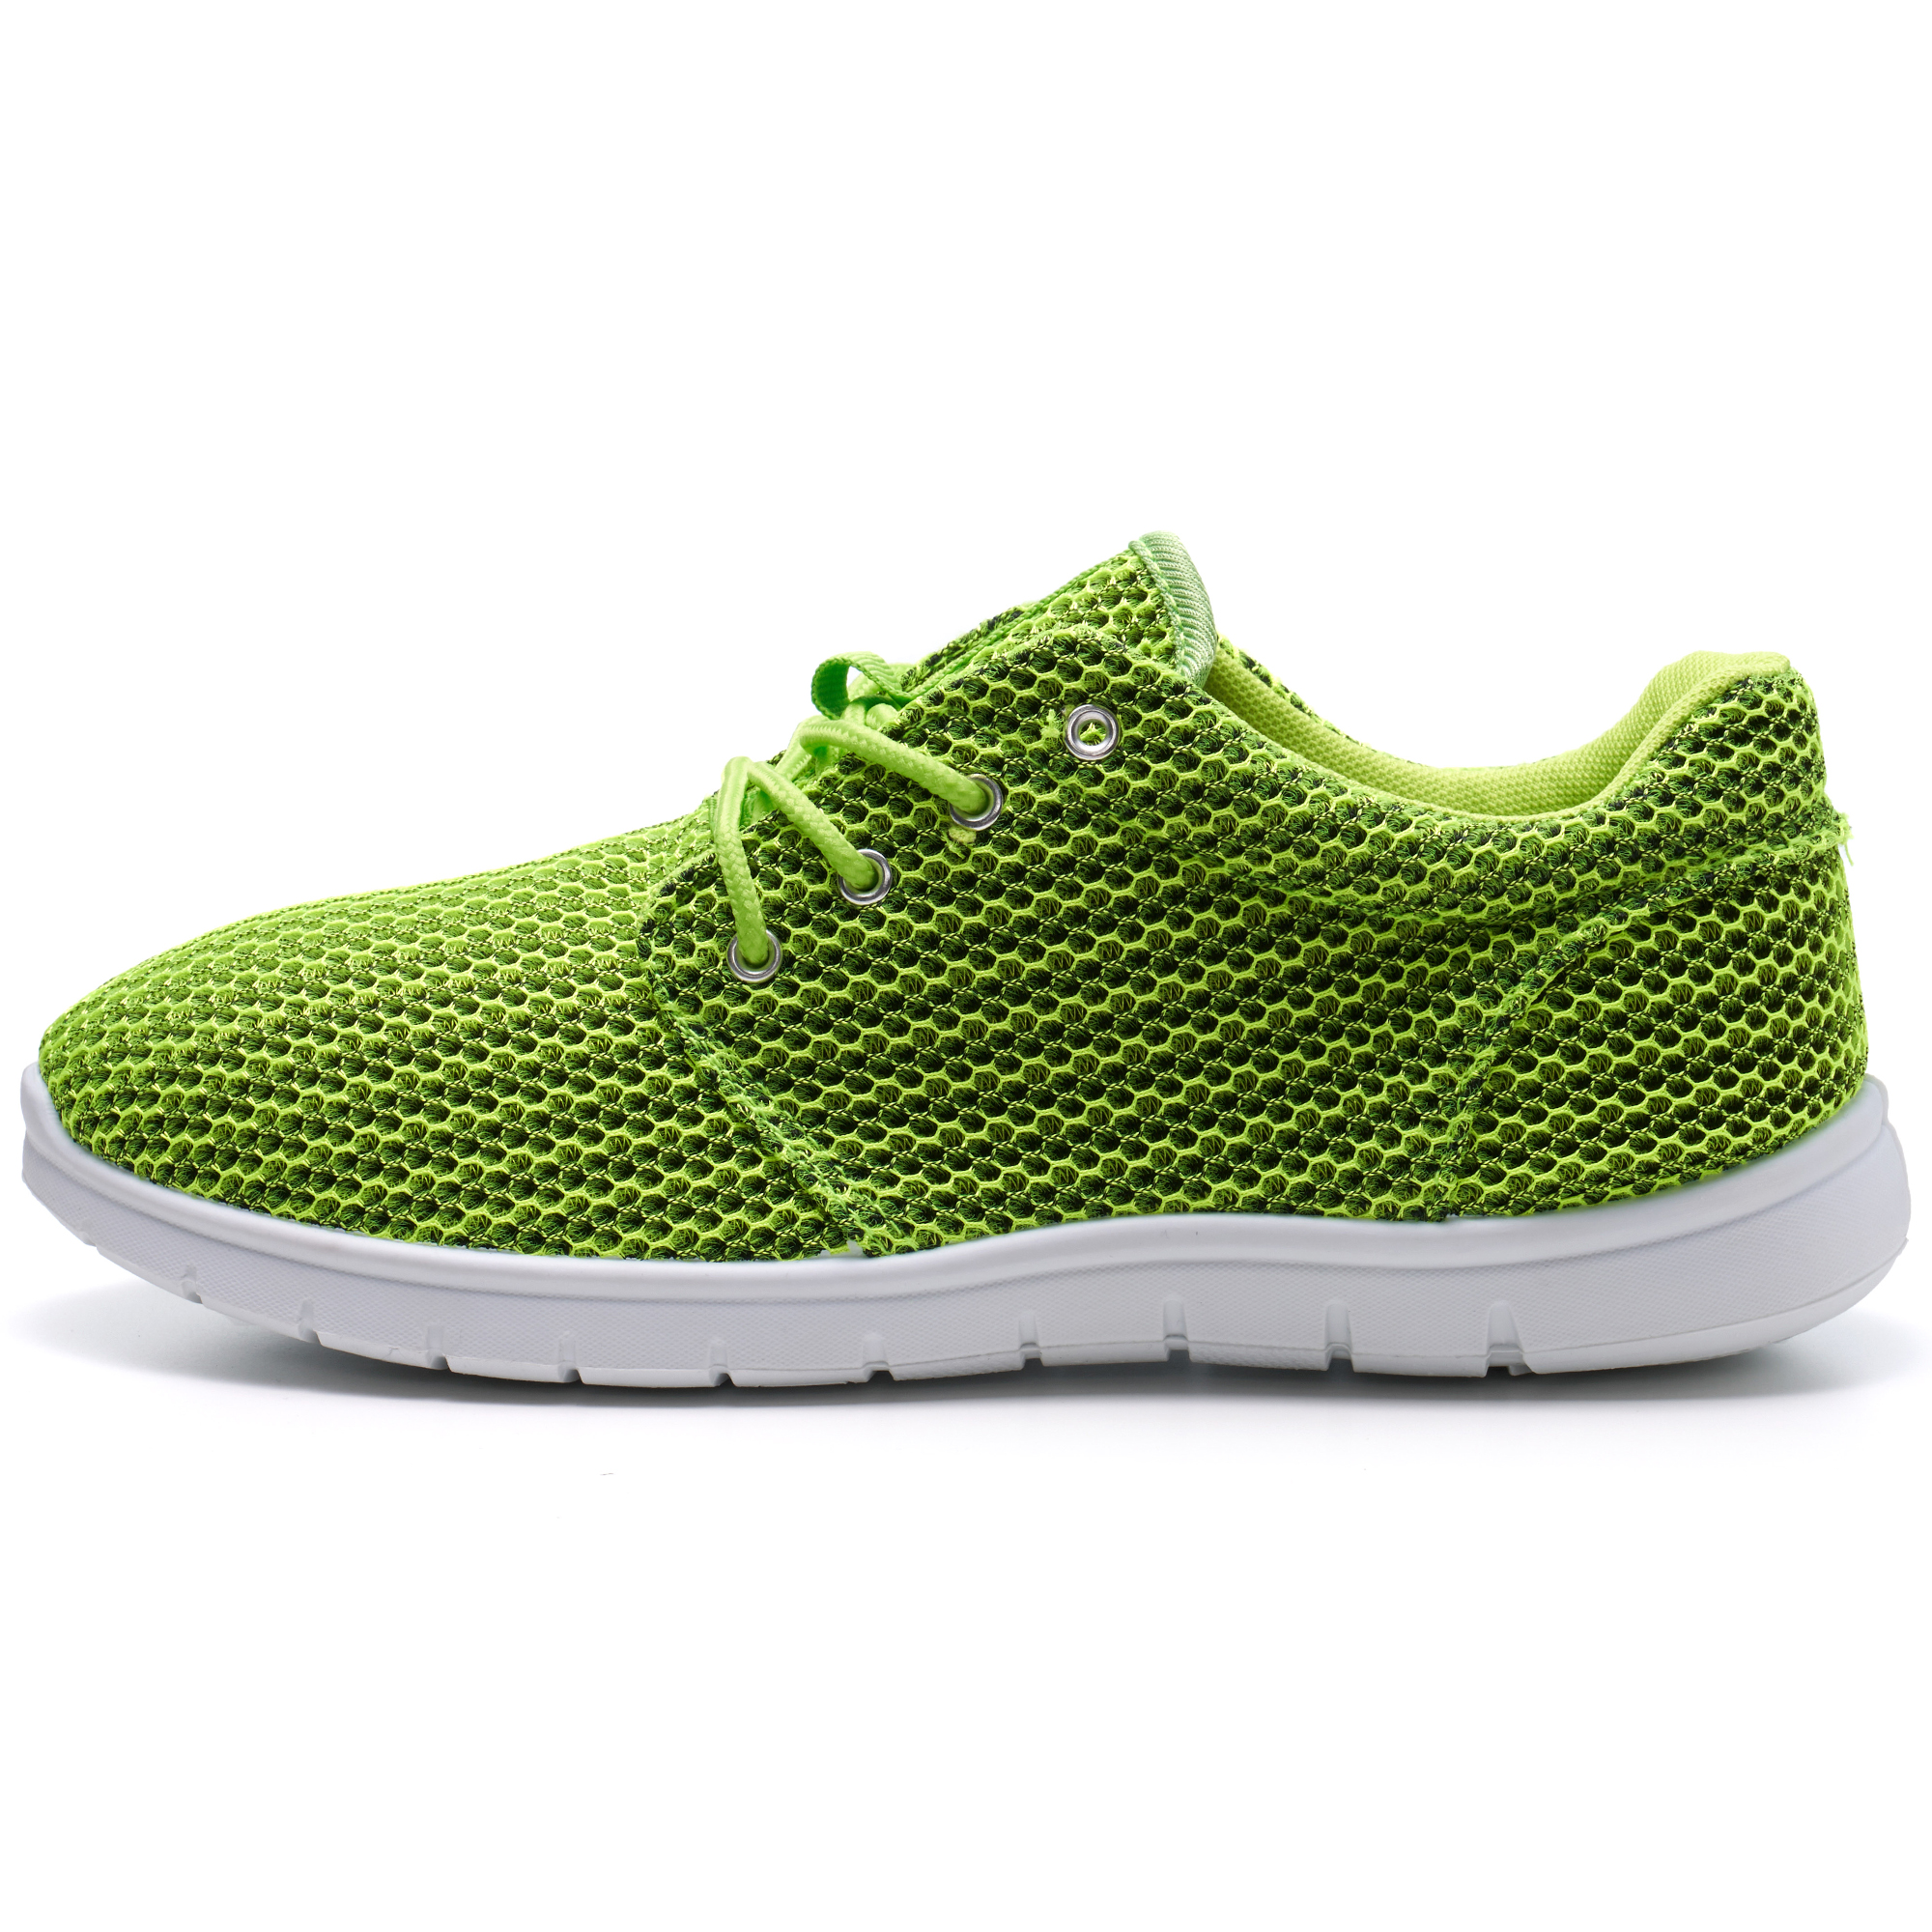 Alpine-Swiss-Kilian-Mesh-Sneakers-Casual-Shoes-Mens-amp-Womens-Lightweight-Trainer thumbnail 59